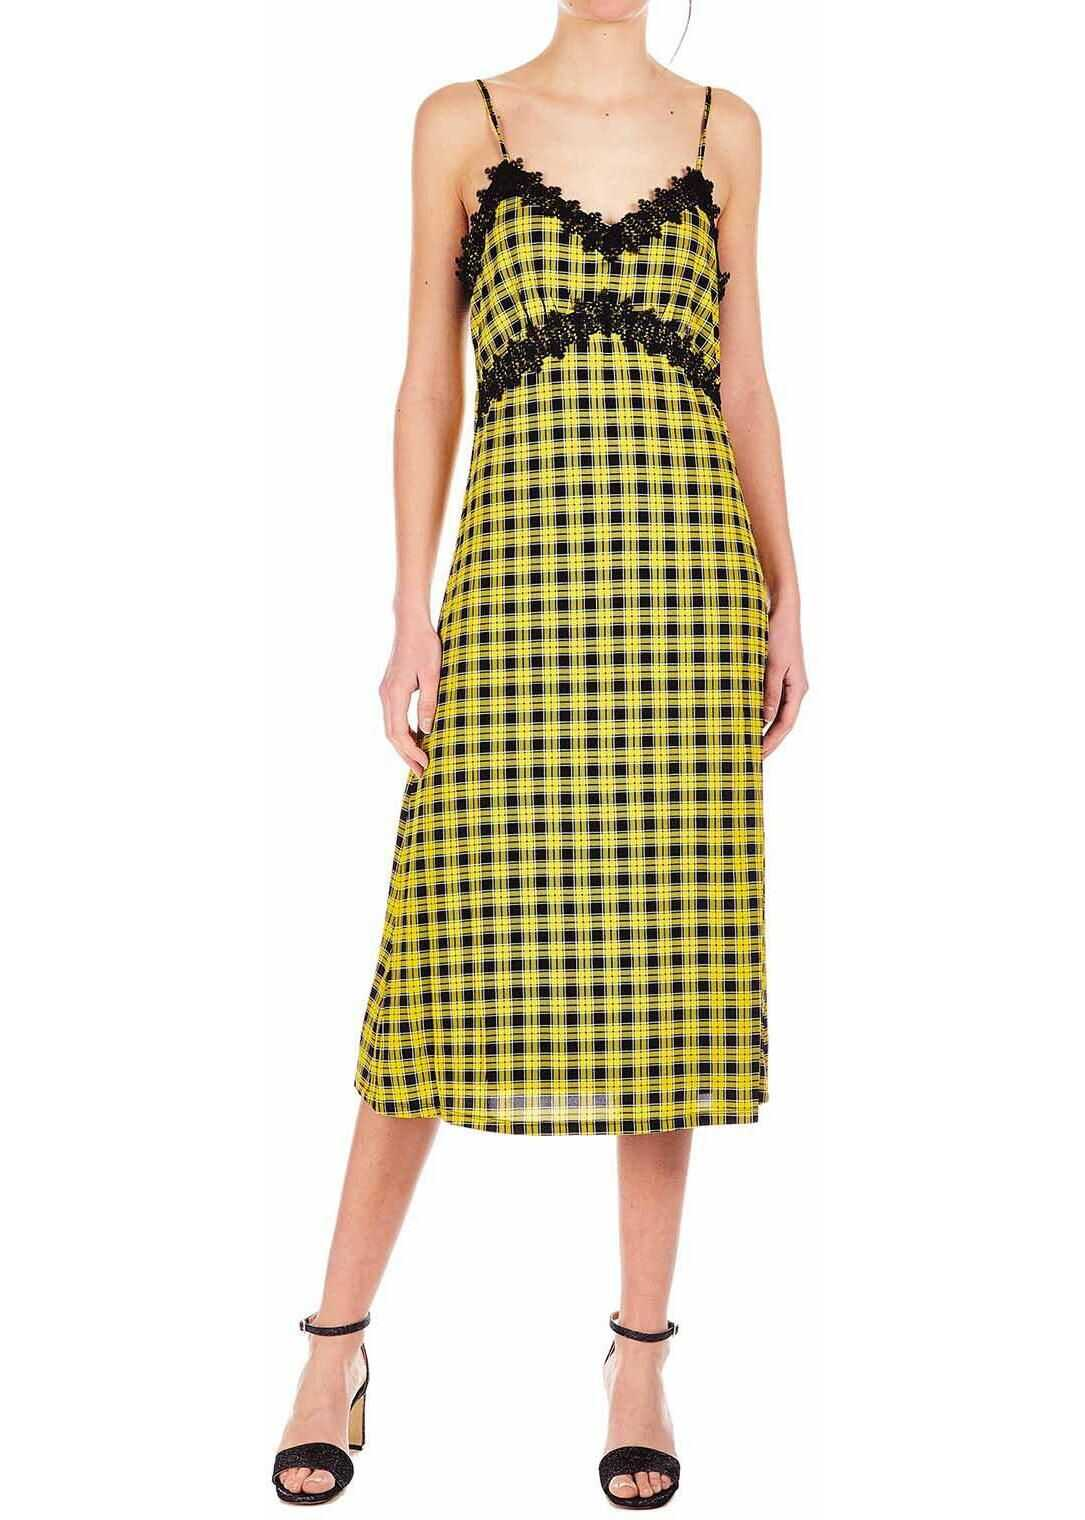 Michael Kors Strap dress with lace Yellow